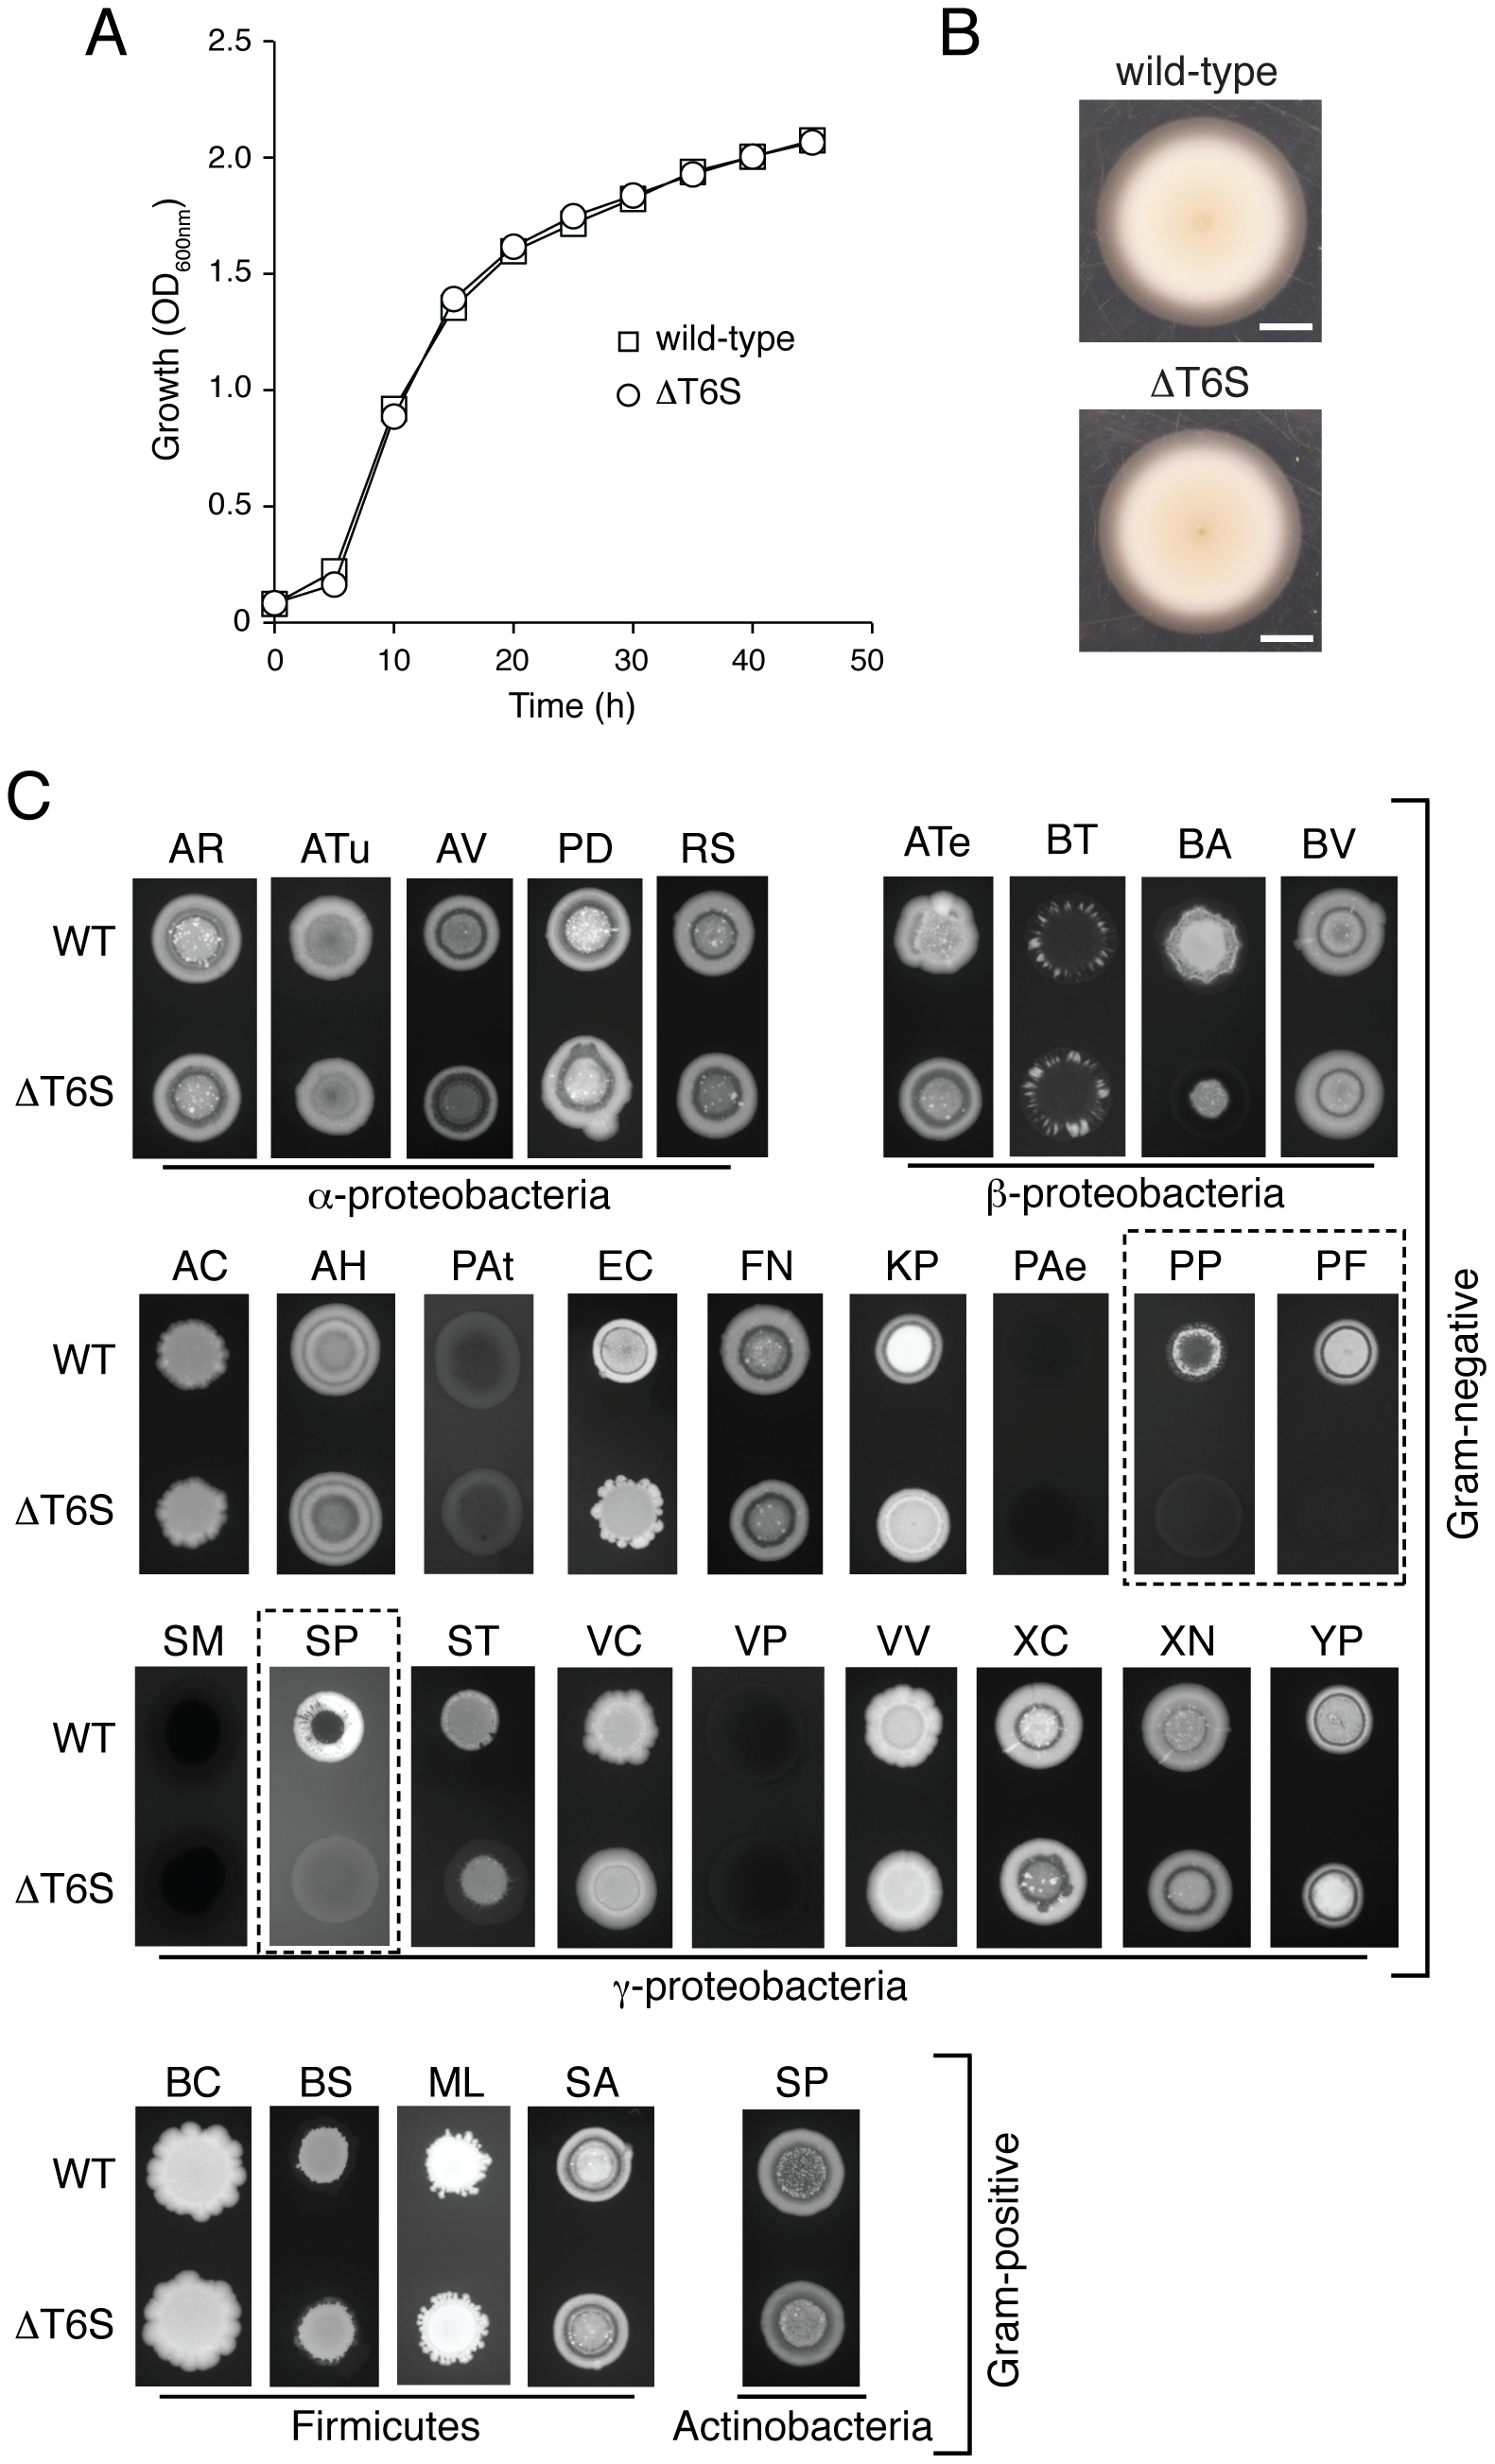 T6S plays a role in the fitness of <i>B. thai</i> in growth competition assays with other bacteria.